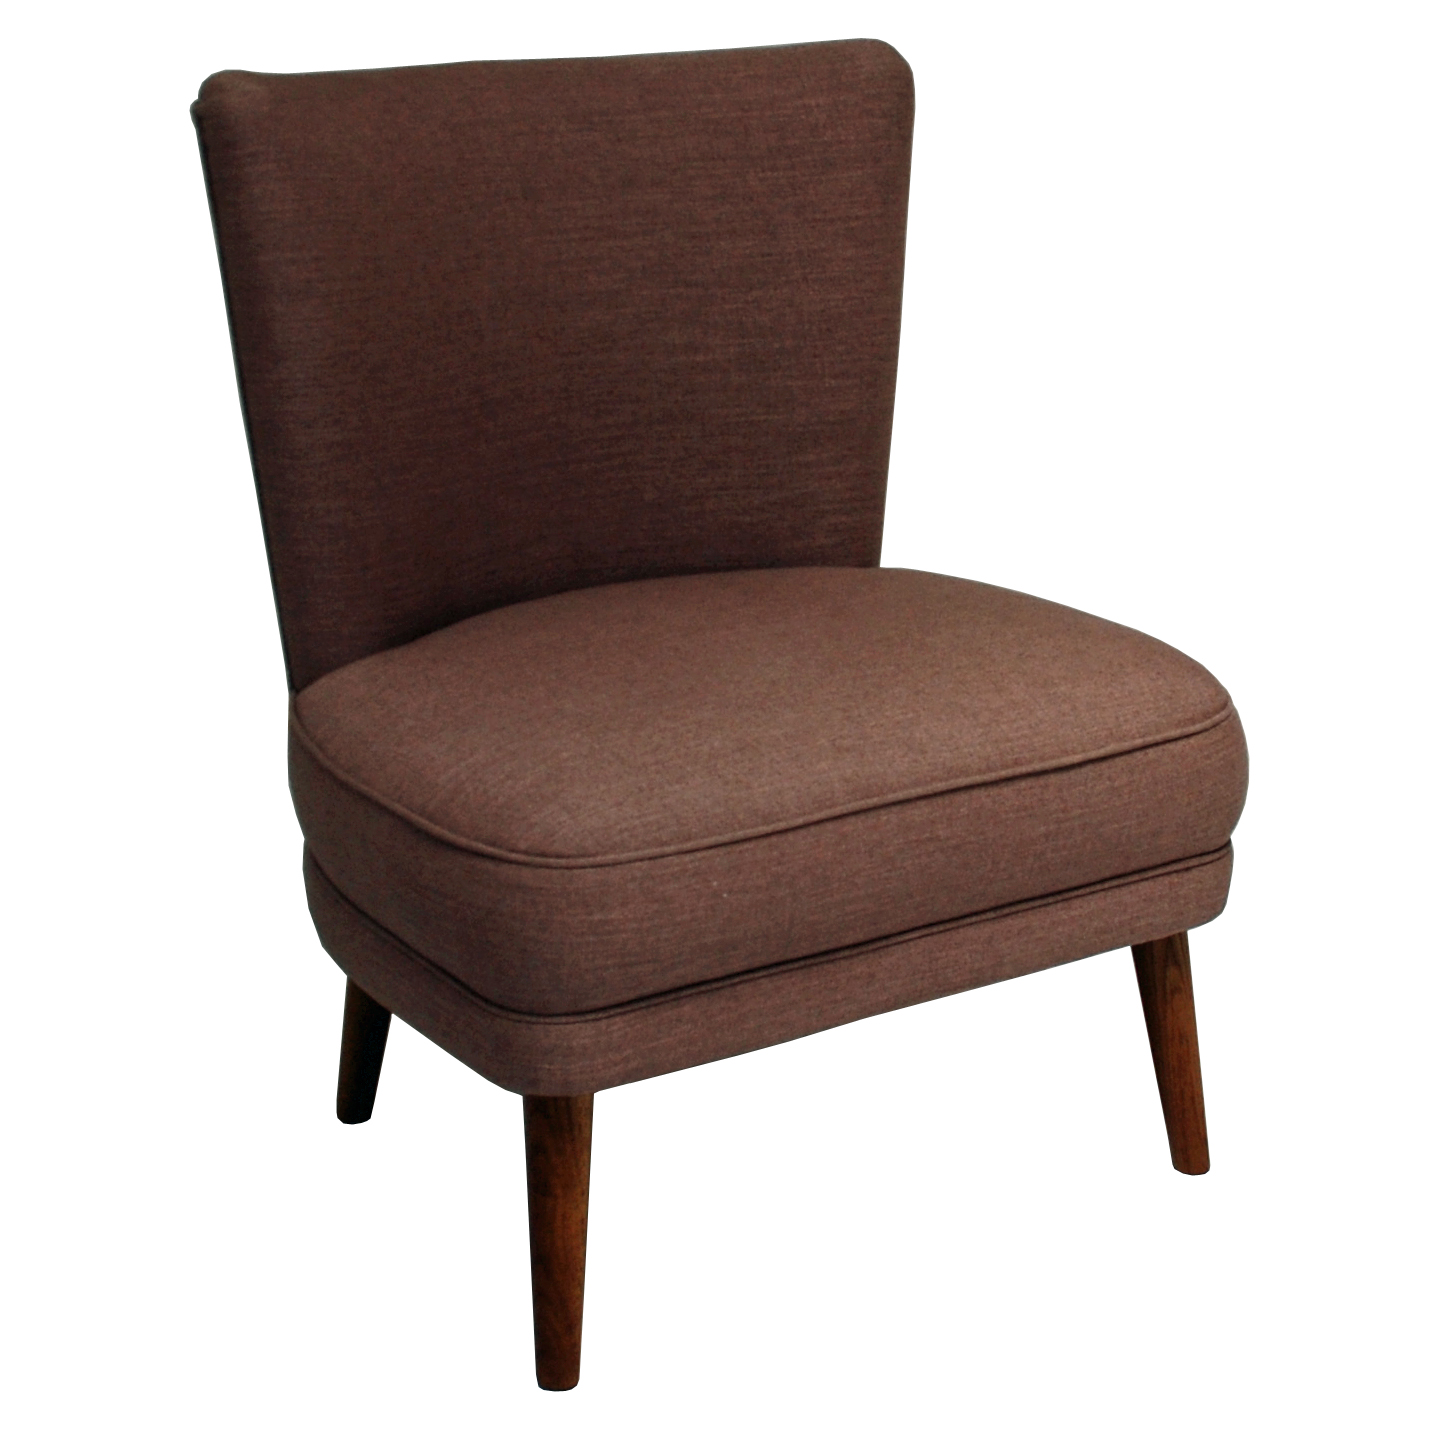 Northiam Accent Chair Handmade In Uk Chairmaker